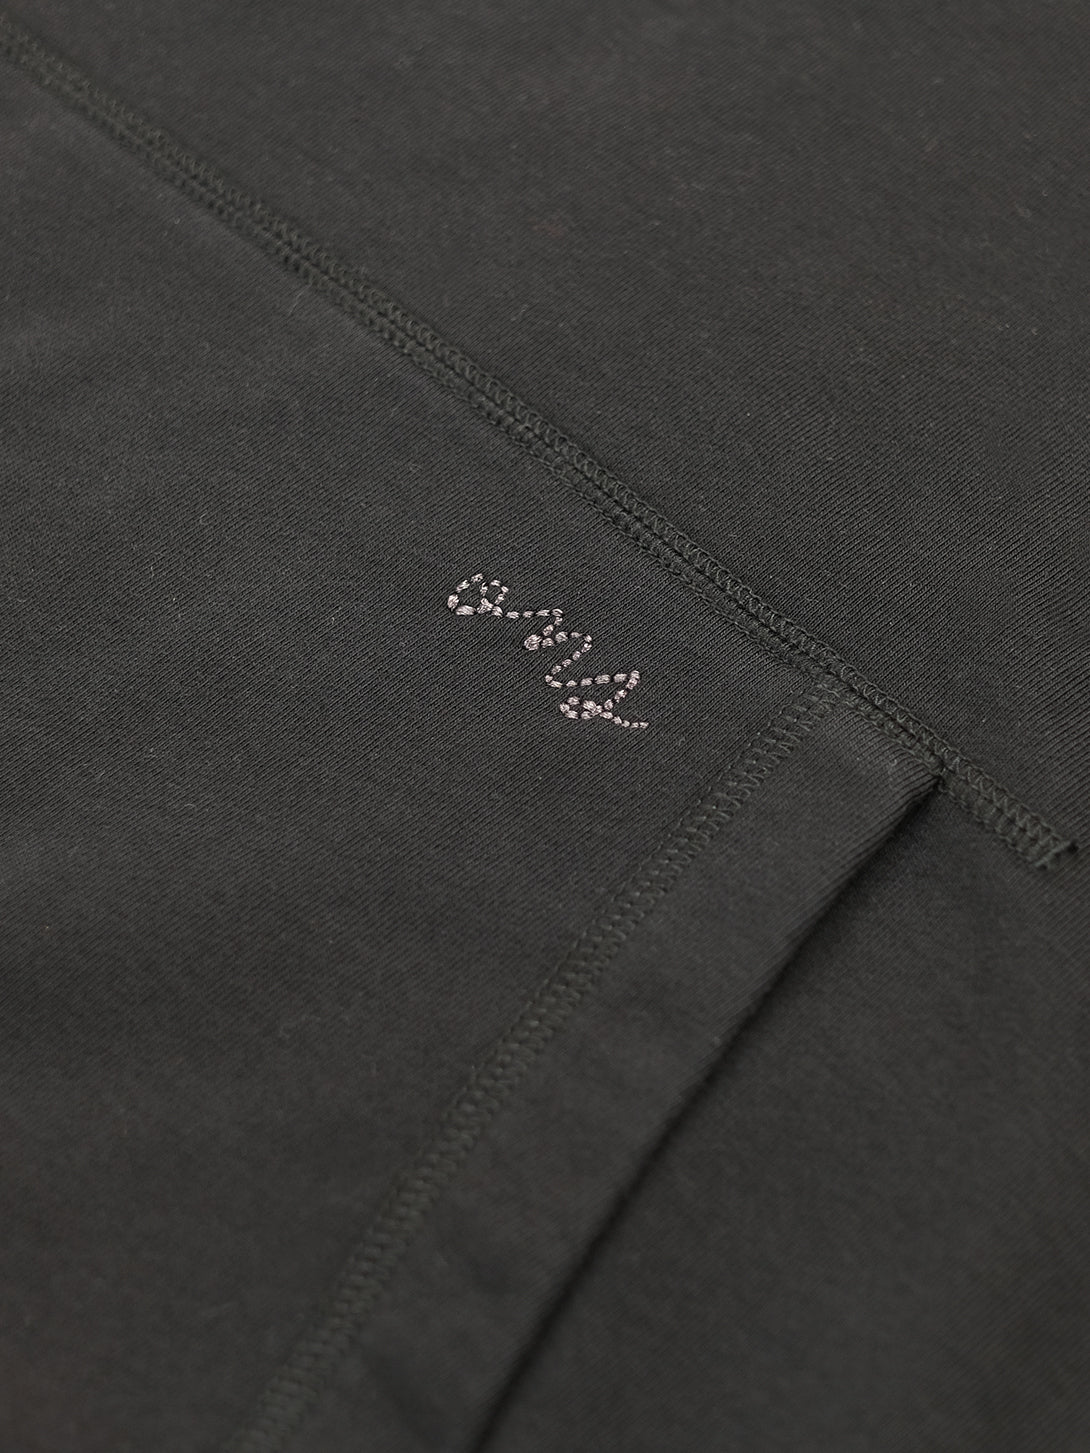 ONS Clothing Men's hoodie in BLACK black friday deals